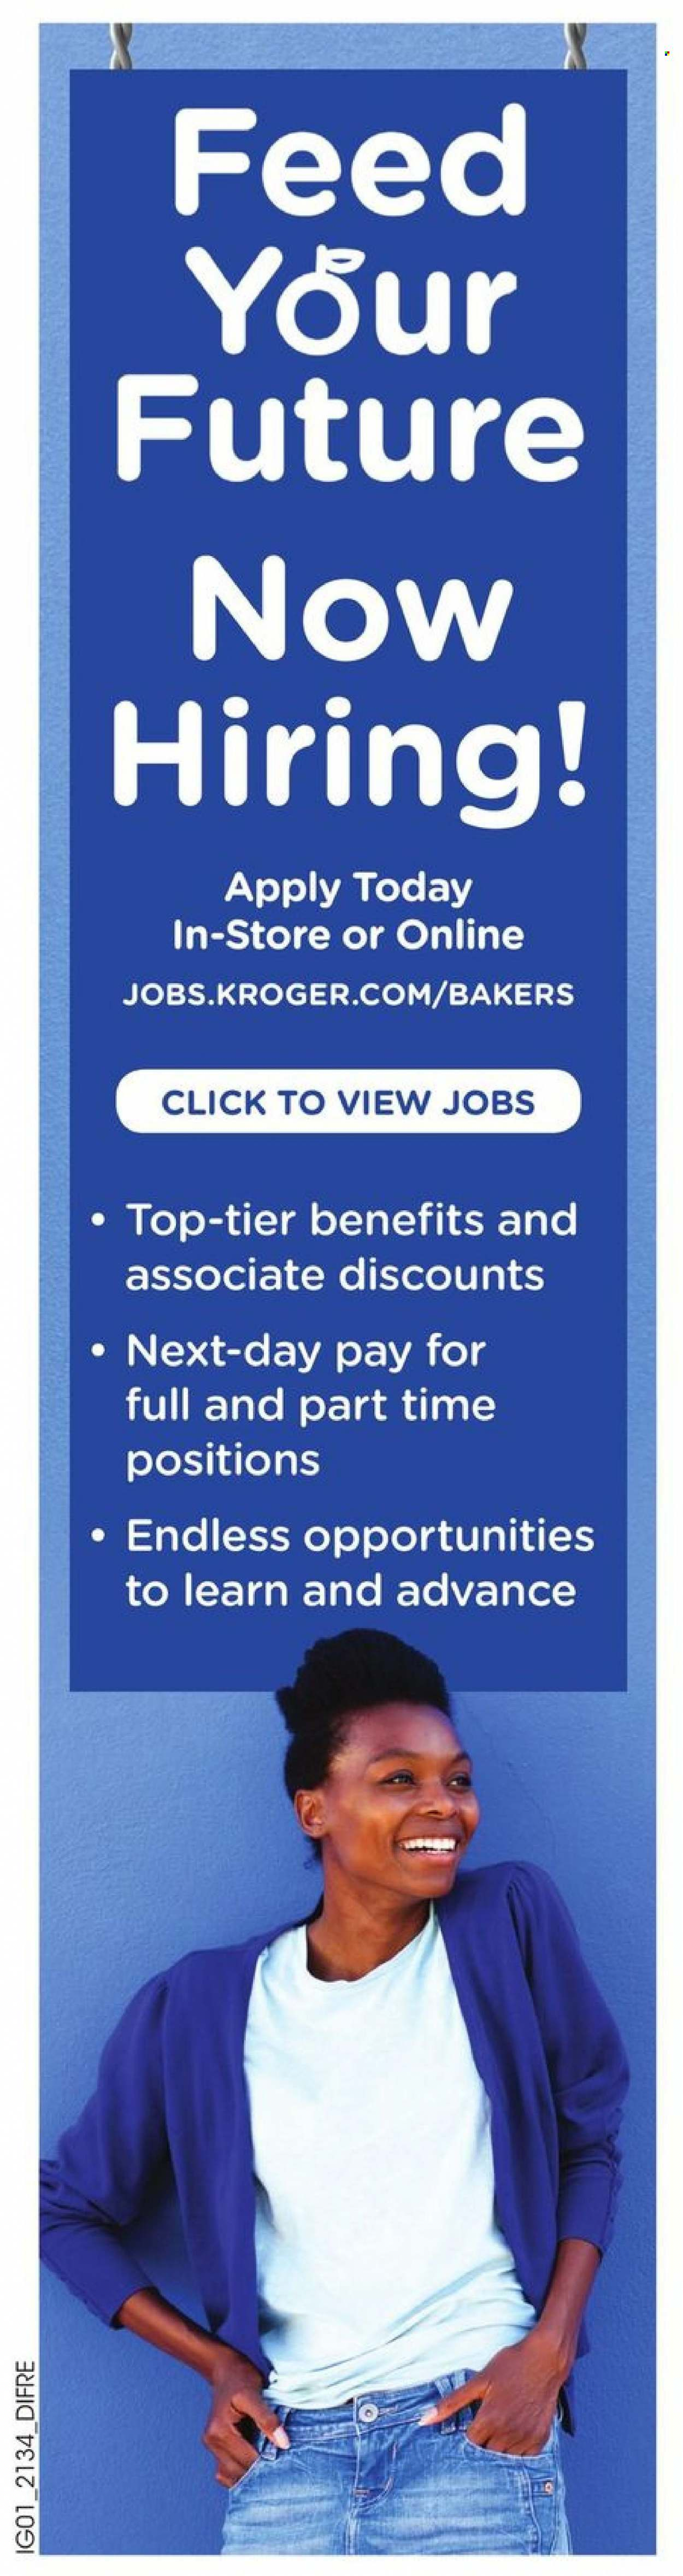 Baker's Ad from september 22 to 28 2021 - Page 11